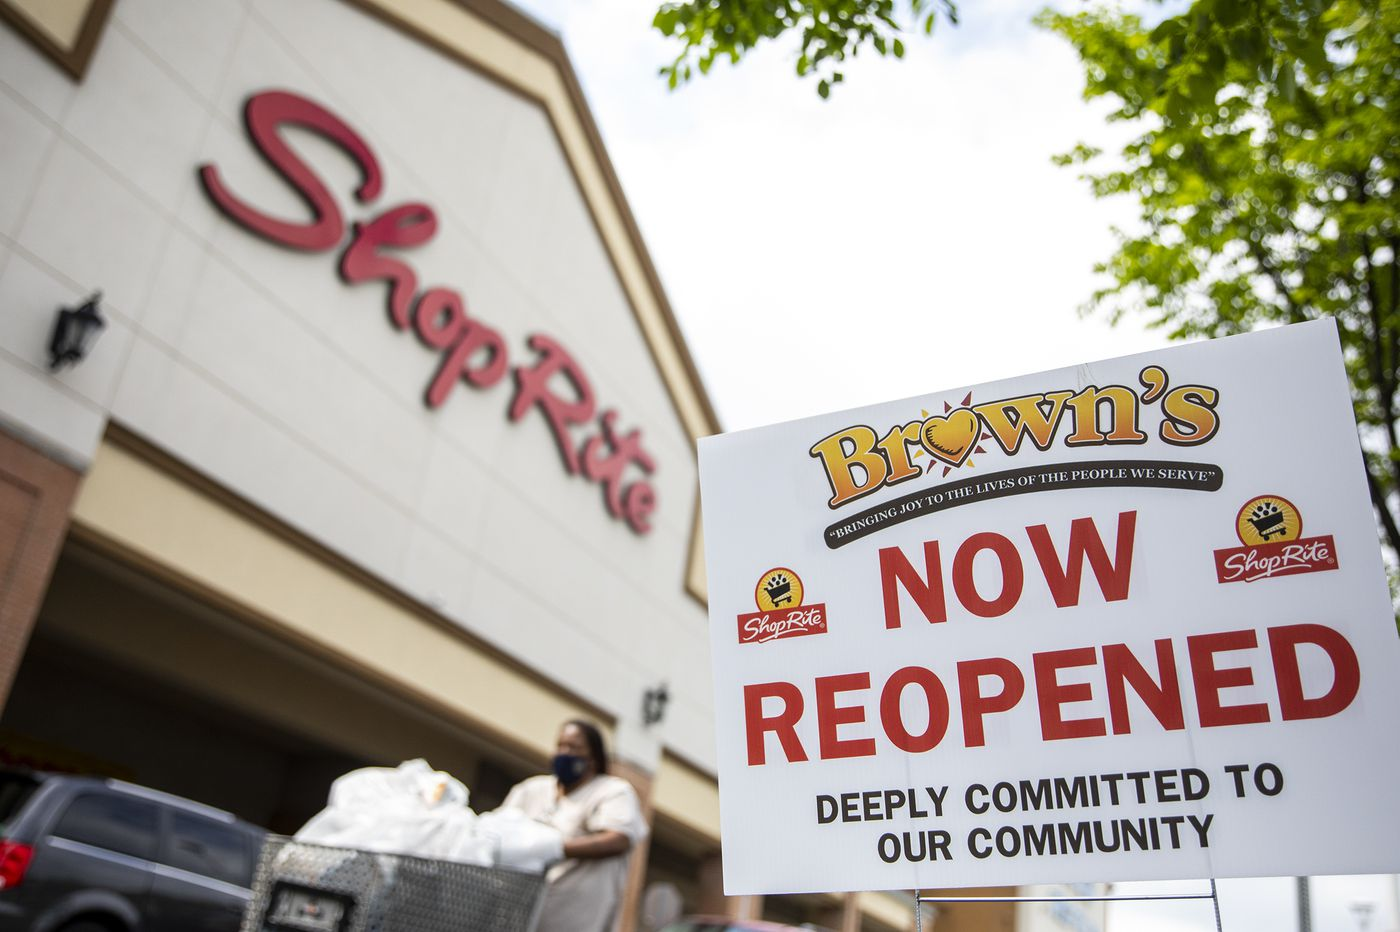 ShopRite returns after the looting, but this is not enough. Jeff Brown is not enough. | Maria Panaritis